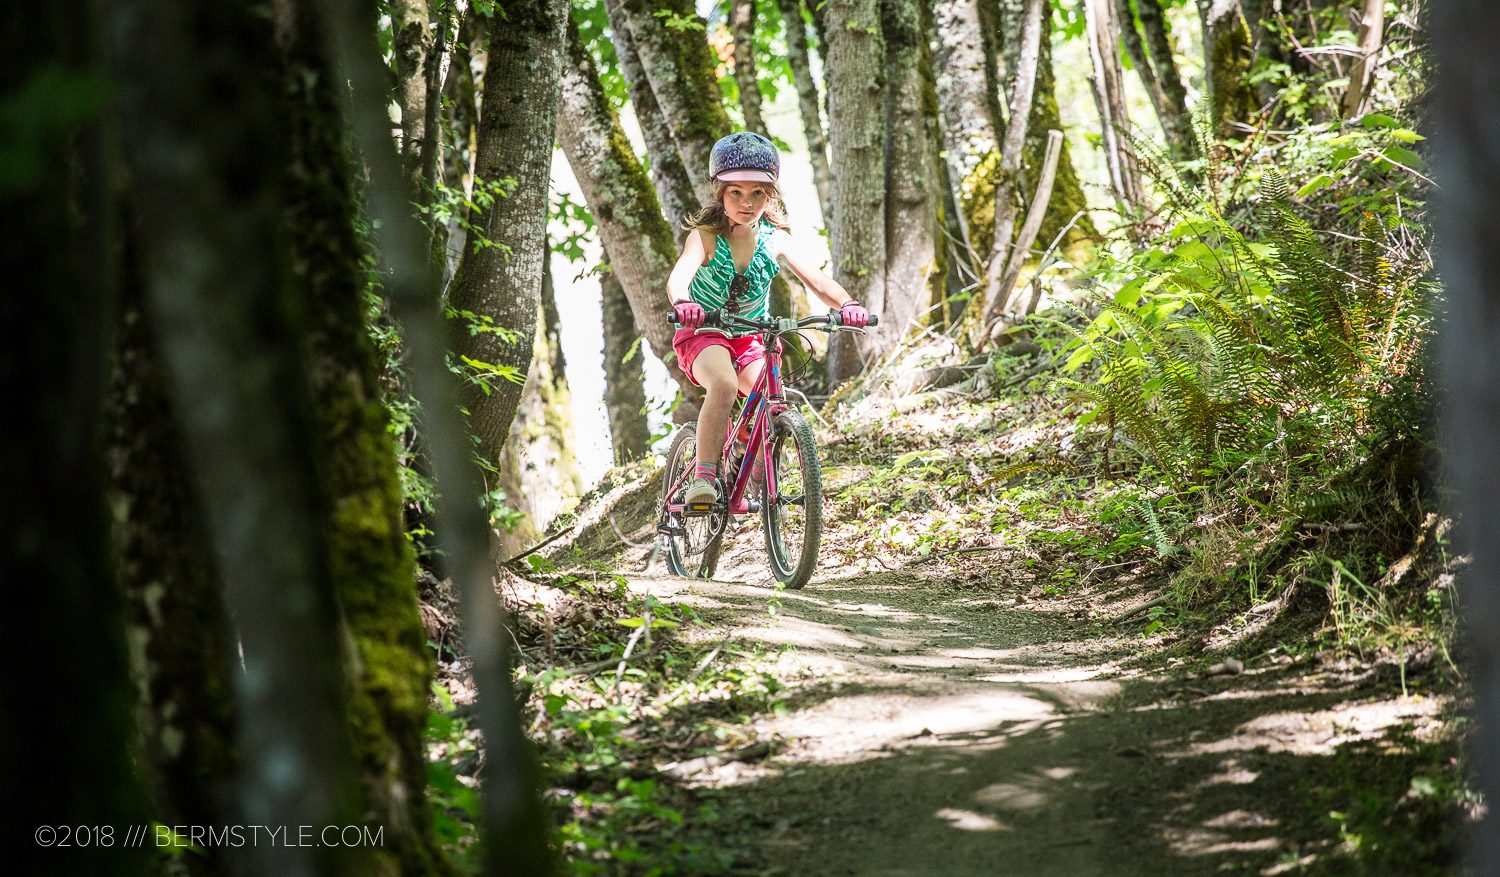 2018 Take a Kid Mountain Biking Day at Gateway Green